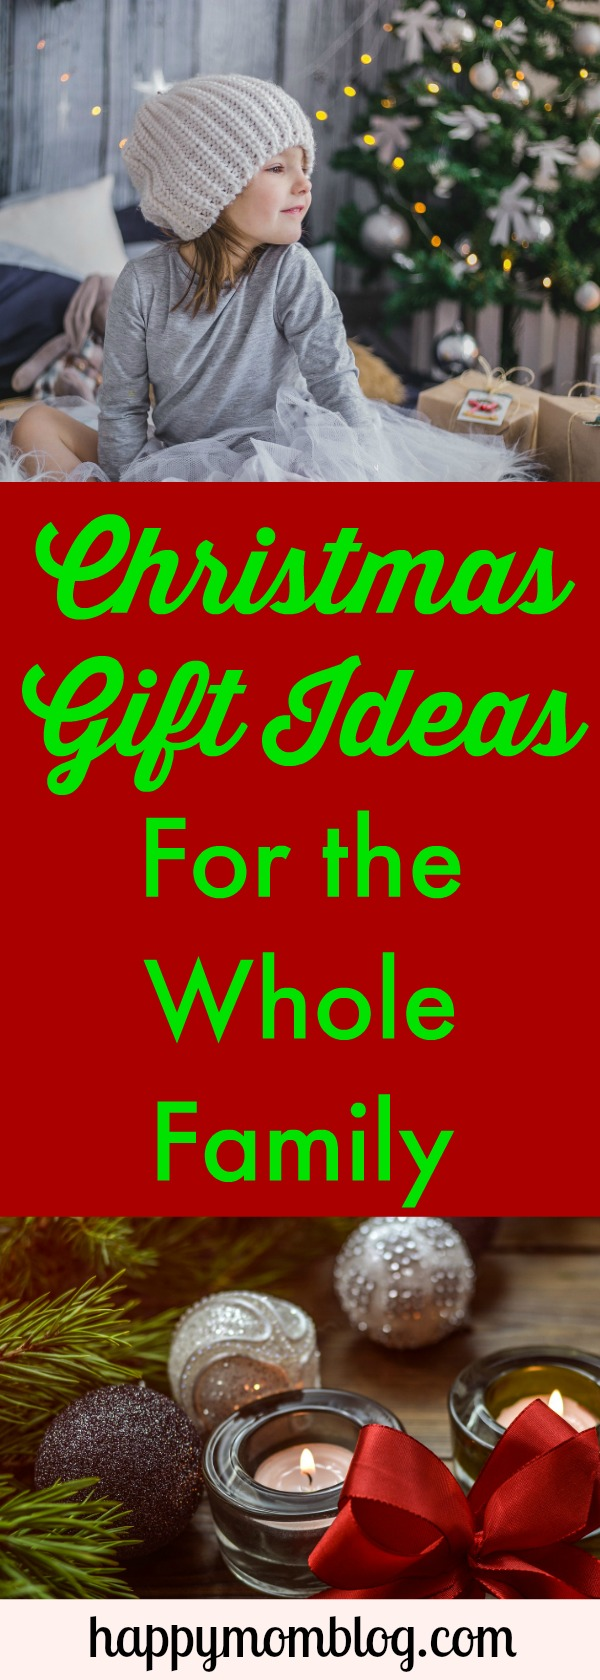 christmas gift ideas the whole family will actually love this is not your average gift